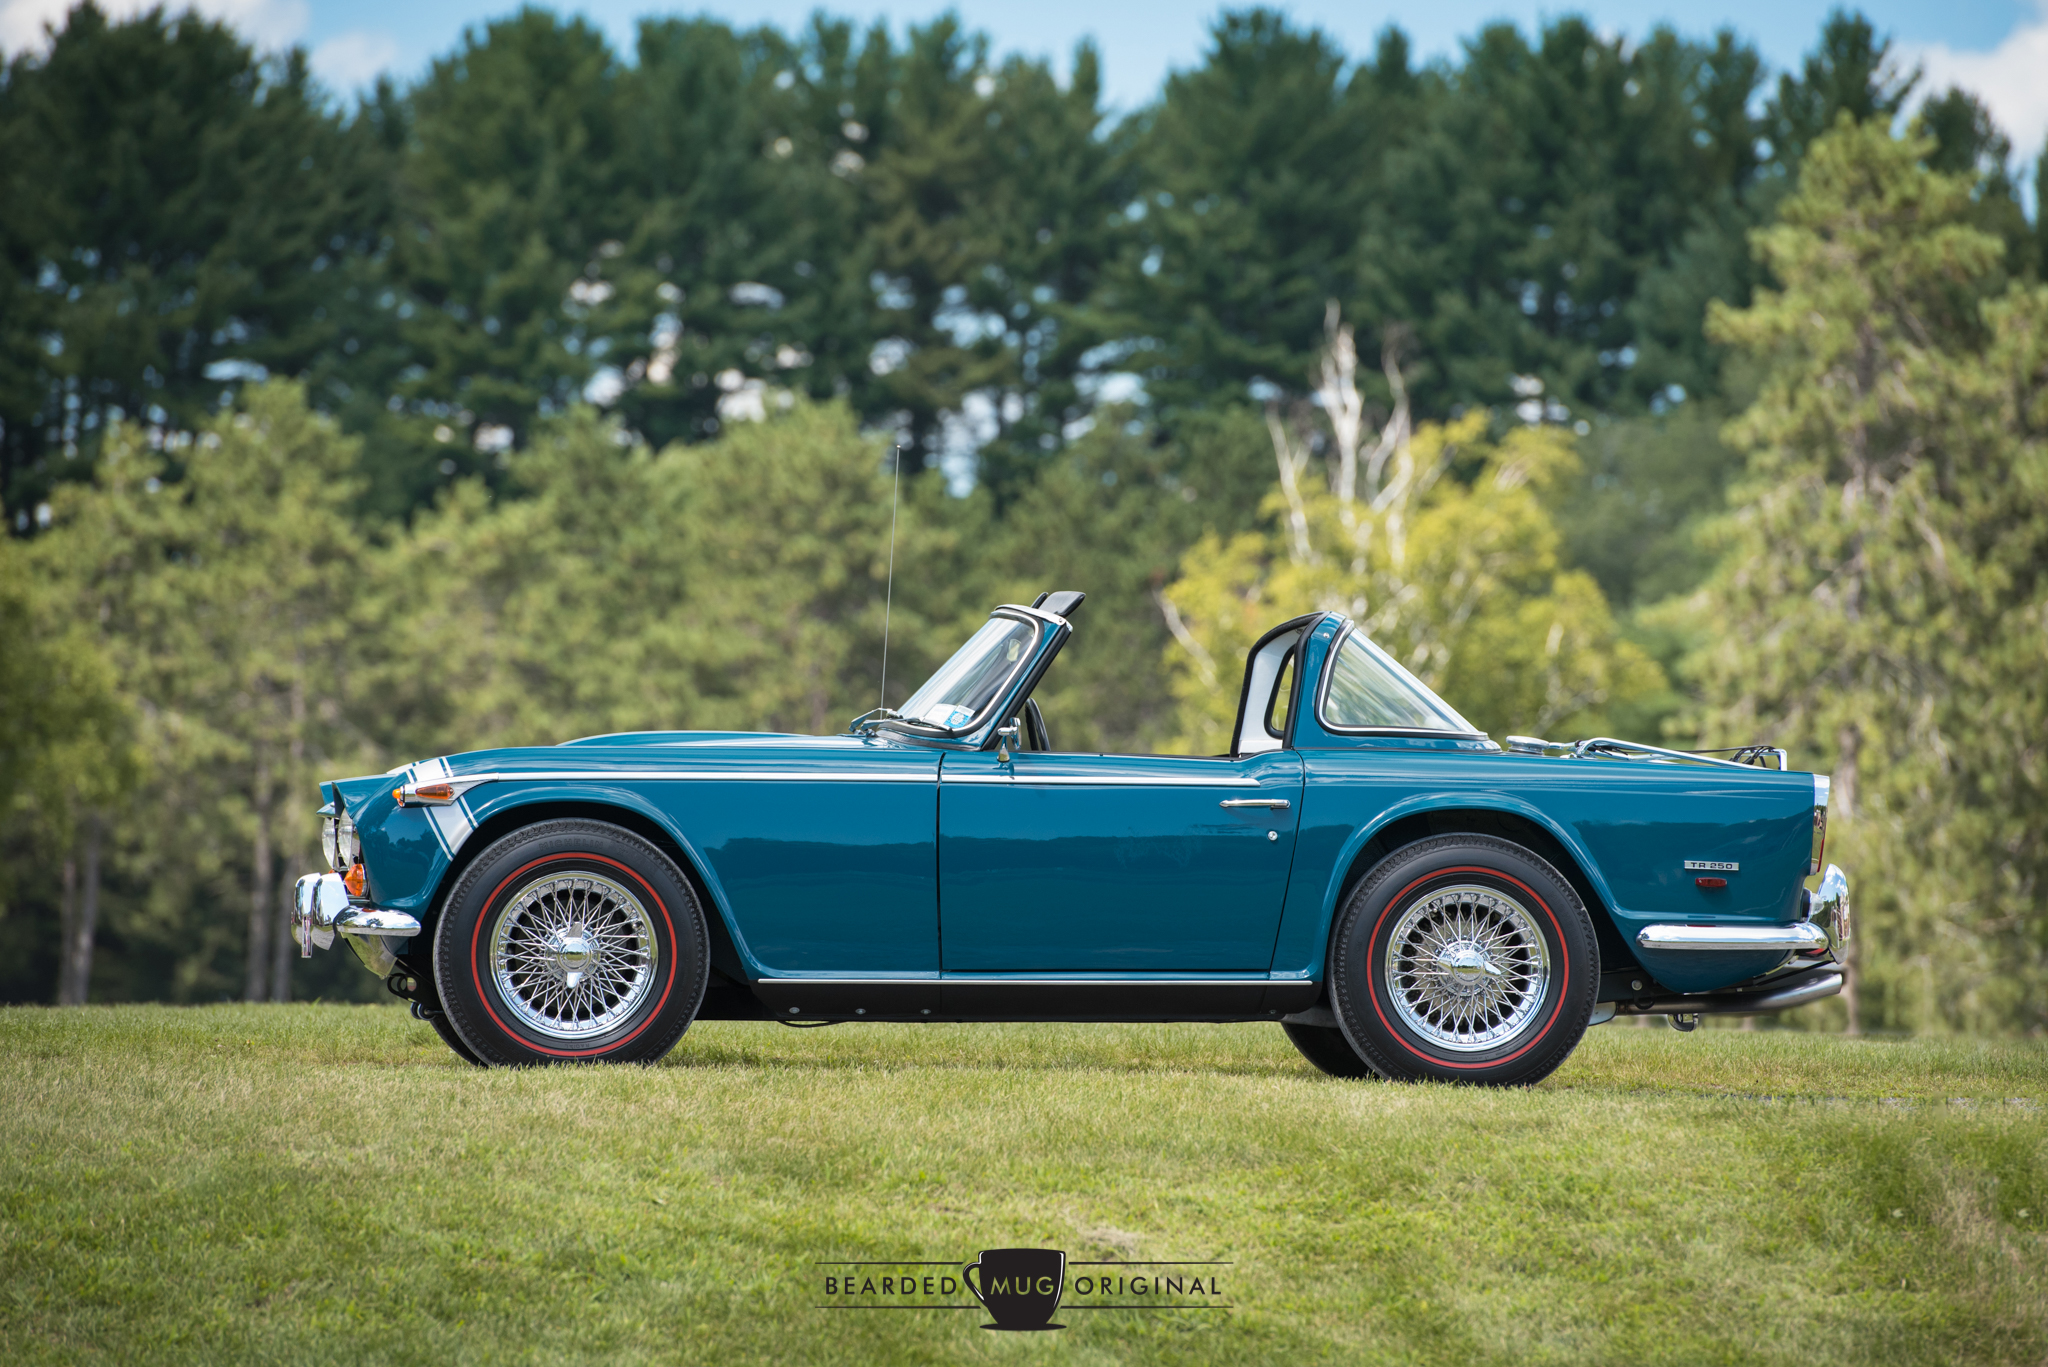 A triumphant achievement: The 1968 Triumph TR250, owned by Jim Whalen,earned and deserved the top honors,the Best in Show.